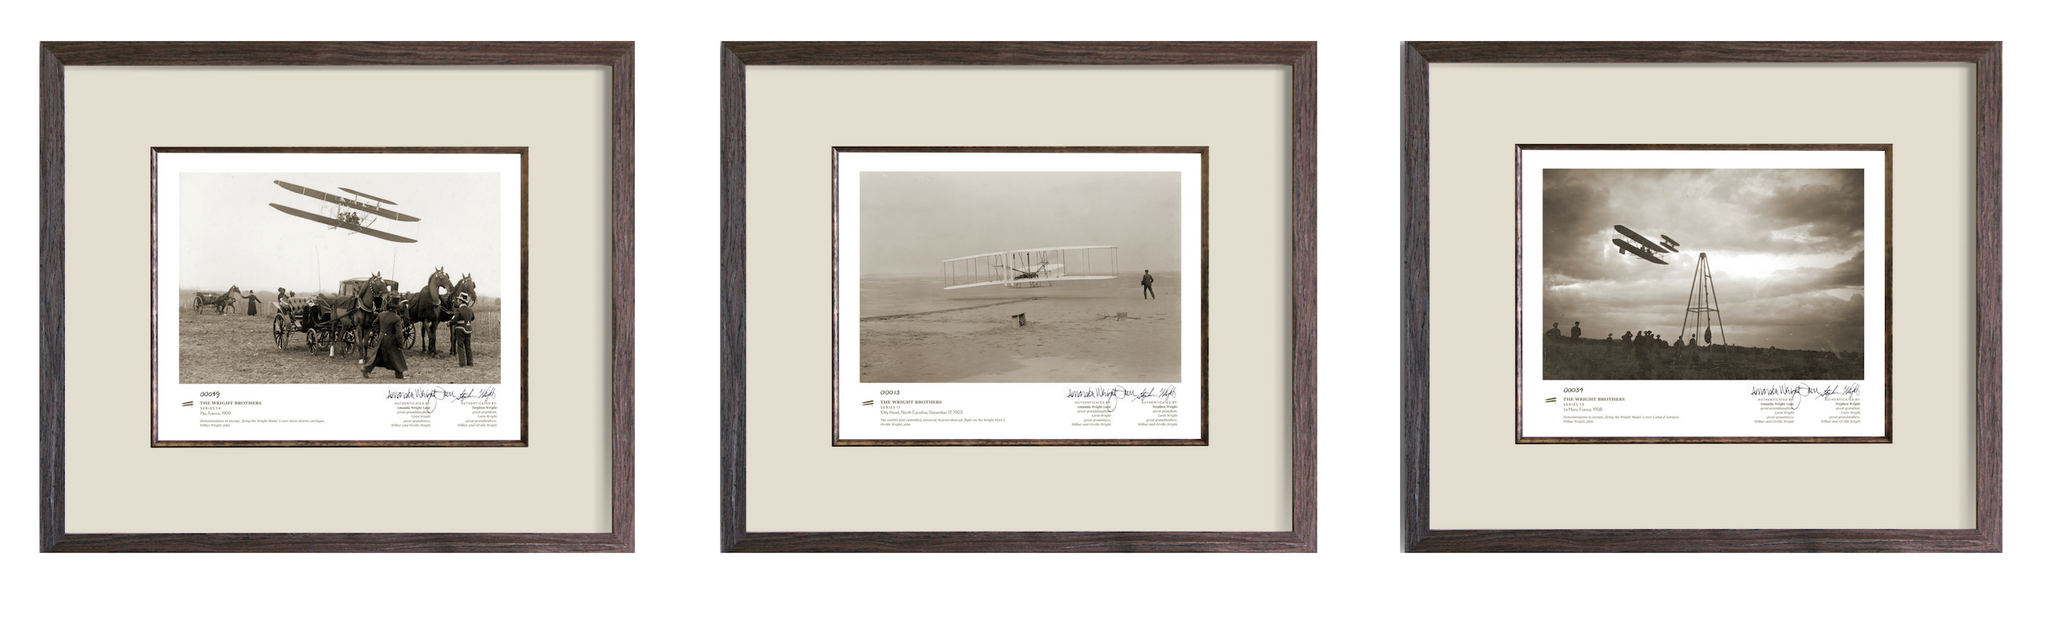 The Wright Brothers Exclusively Authorized Historic Photo Prints